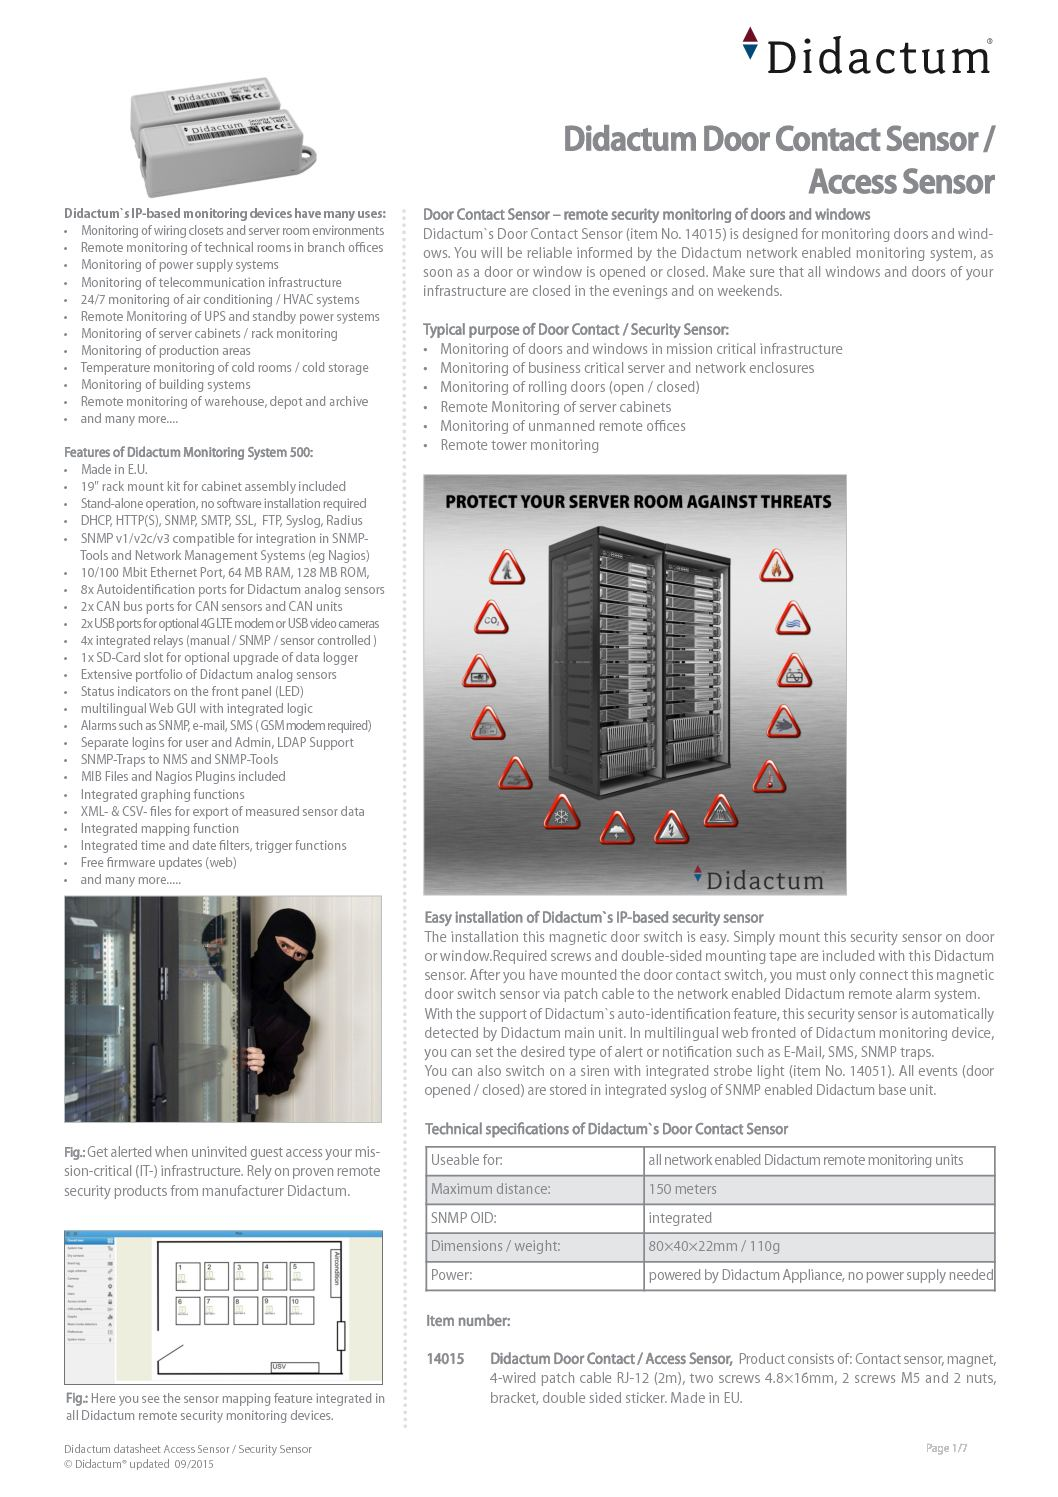 Calamo Didactum Door Contact Sensor Remote Monitoring Of Doors Security Contacts Wiring Series And Windows